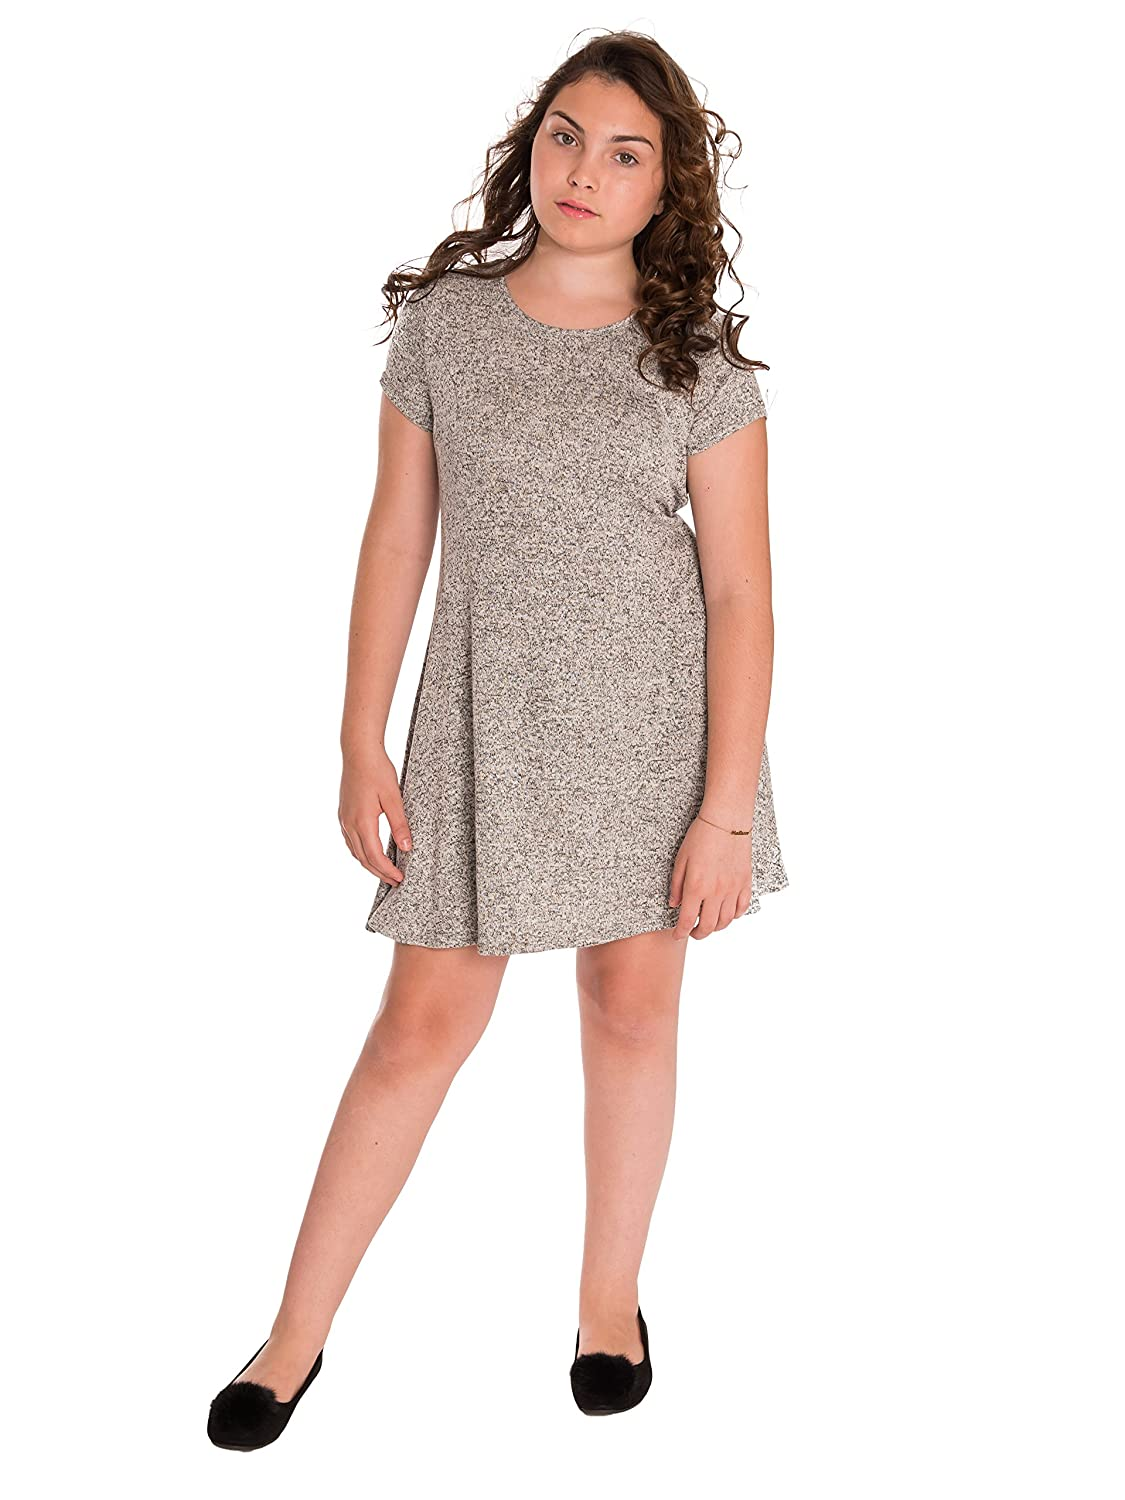 dc8b6fcc83 ENJOY SUPERB COMFORT  Let your girl move and stroll without limits as this  skater dress features a soft sweater knit and U-scoop neckline which allows  ...